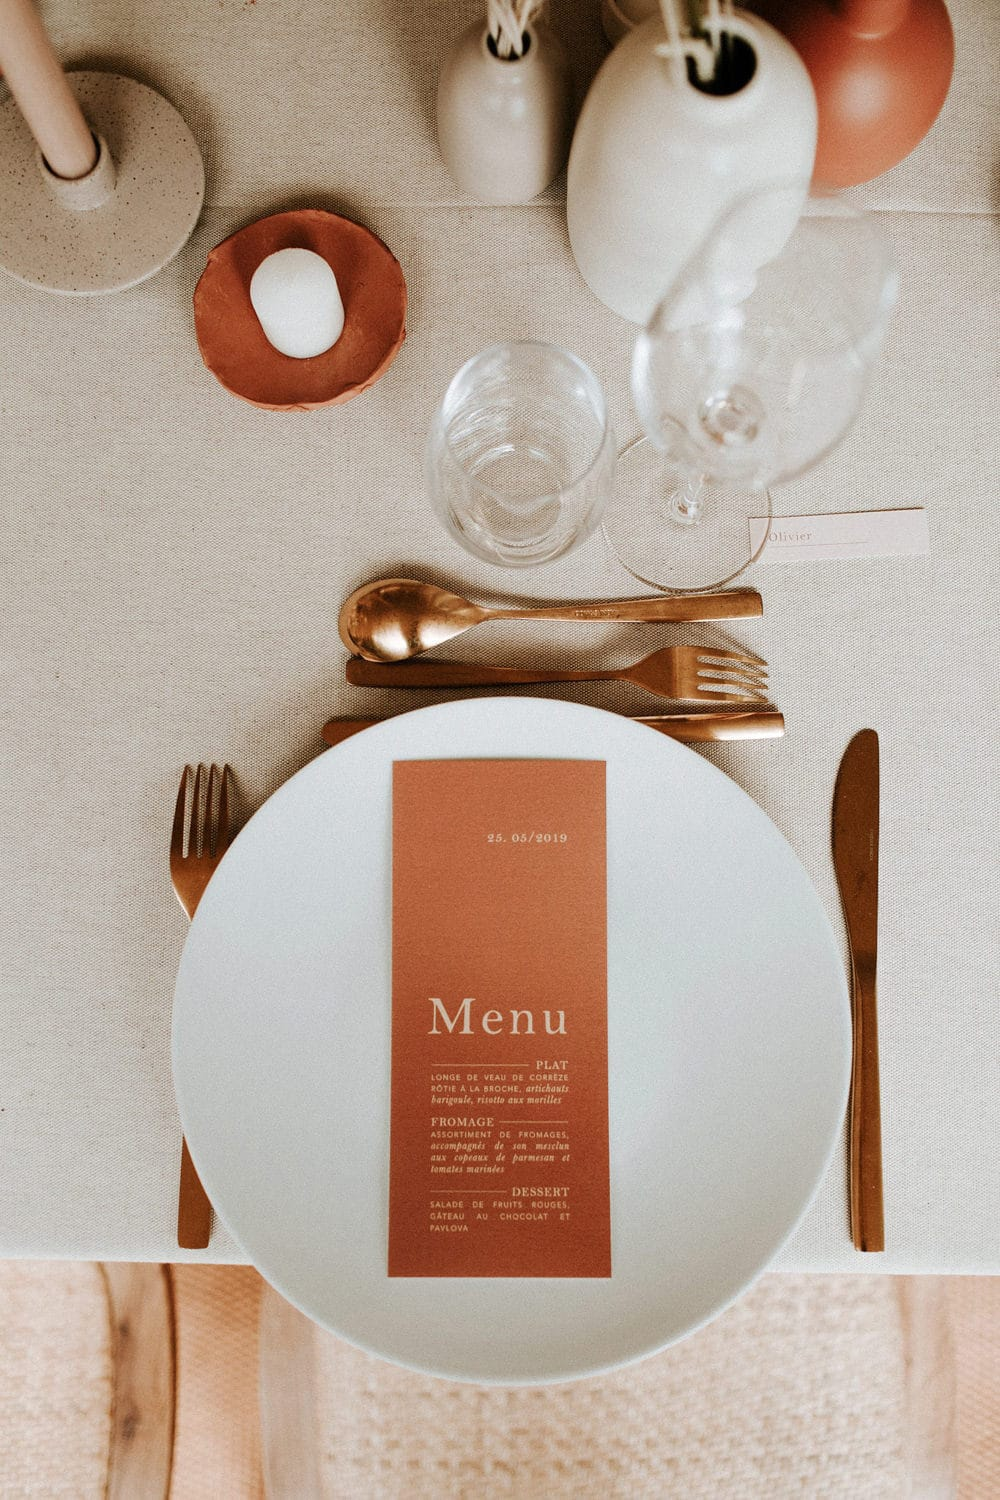 Boho Rust & White Wedding Ideas | A minimalist wedding reception place setting features an oatmeal linen tablecloth, round white plate topped with rectangular rust coloured menu printed with white text, gold cutlery, a terracotta candle plate and small ceramic vases in earthy colours filled with dried flowers. | Photography: Pinewood Weddings via La mariée aux pieds nus